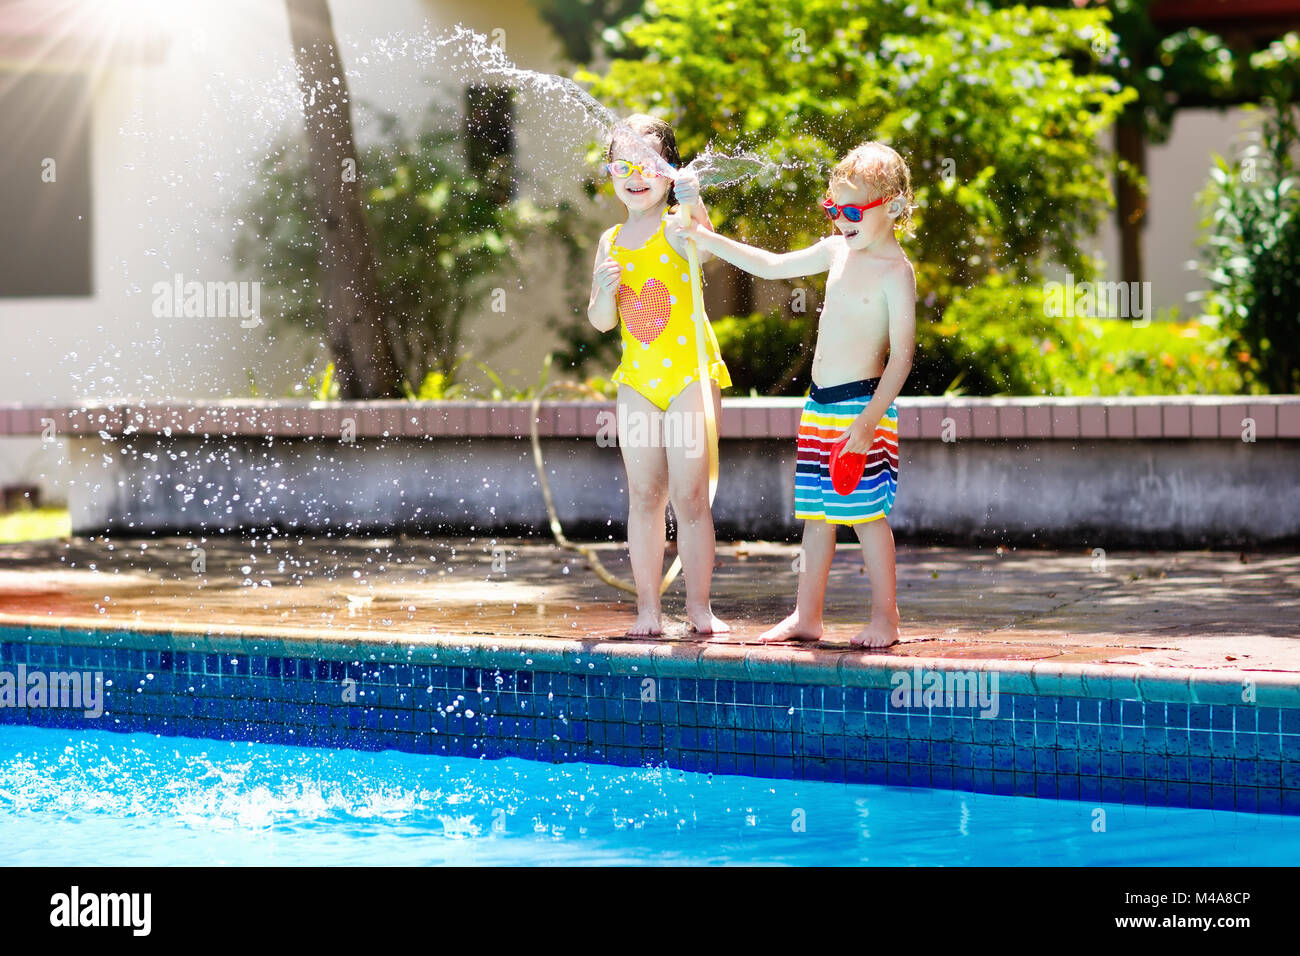 Kids playing with garden hose in backyard with large outdoor ...